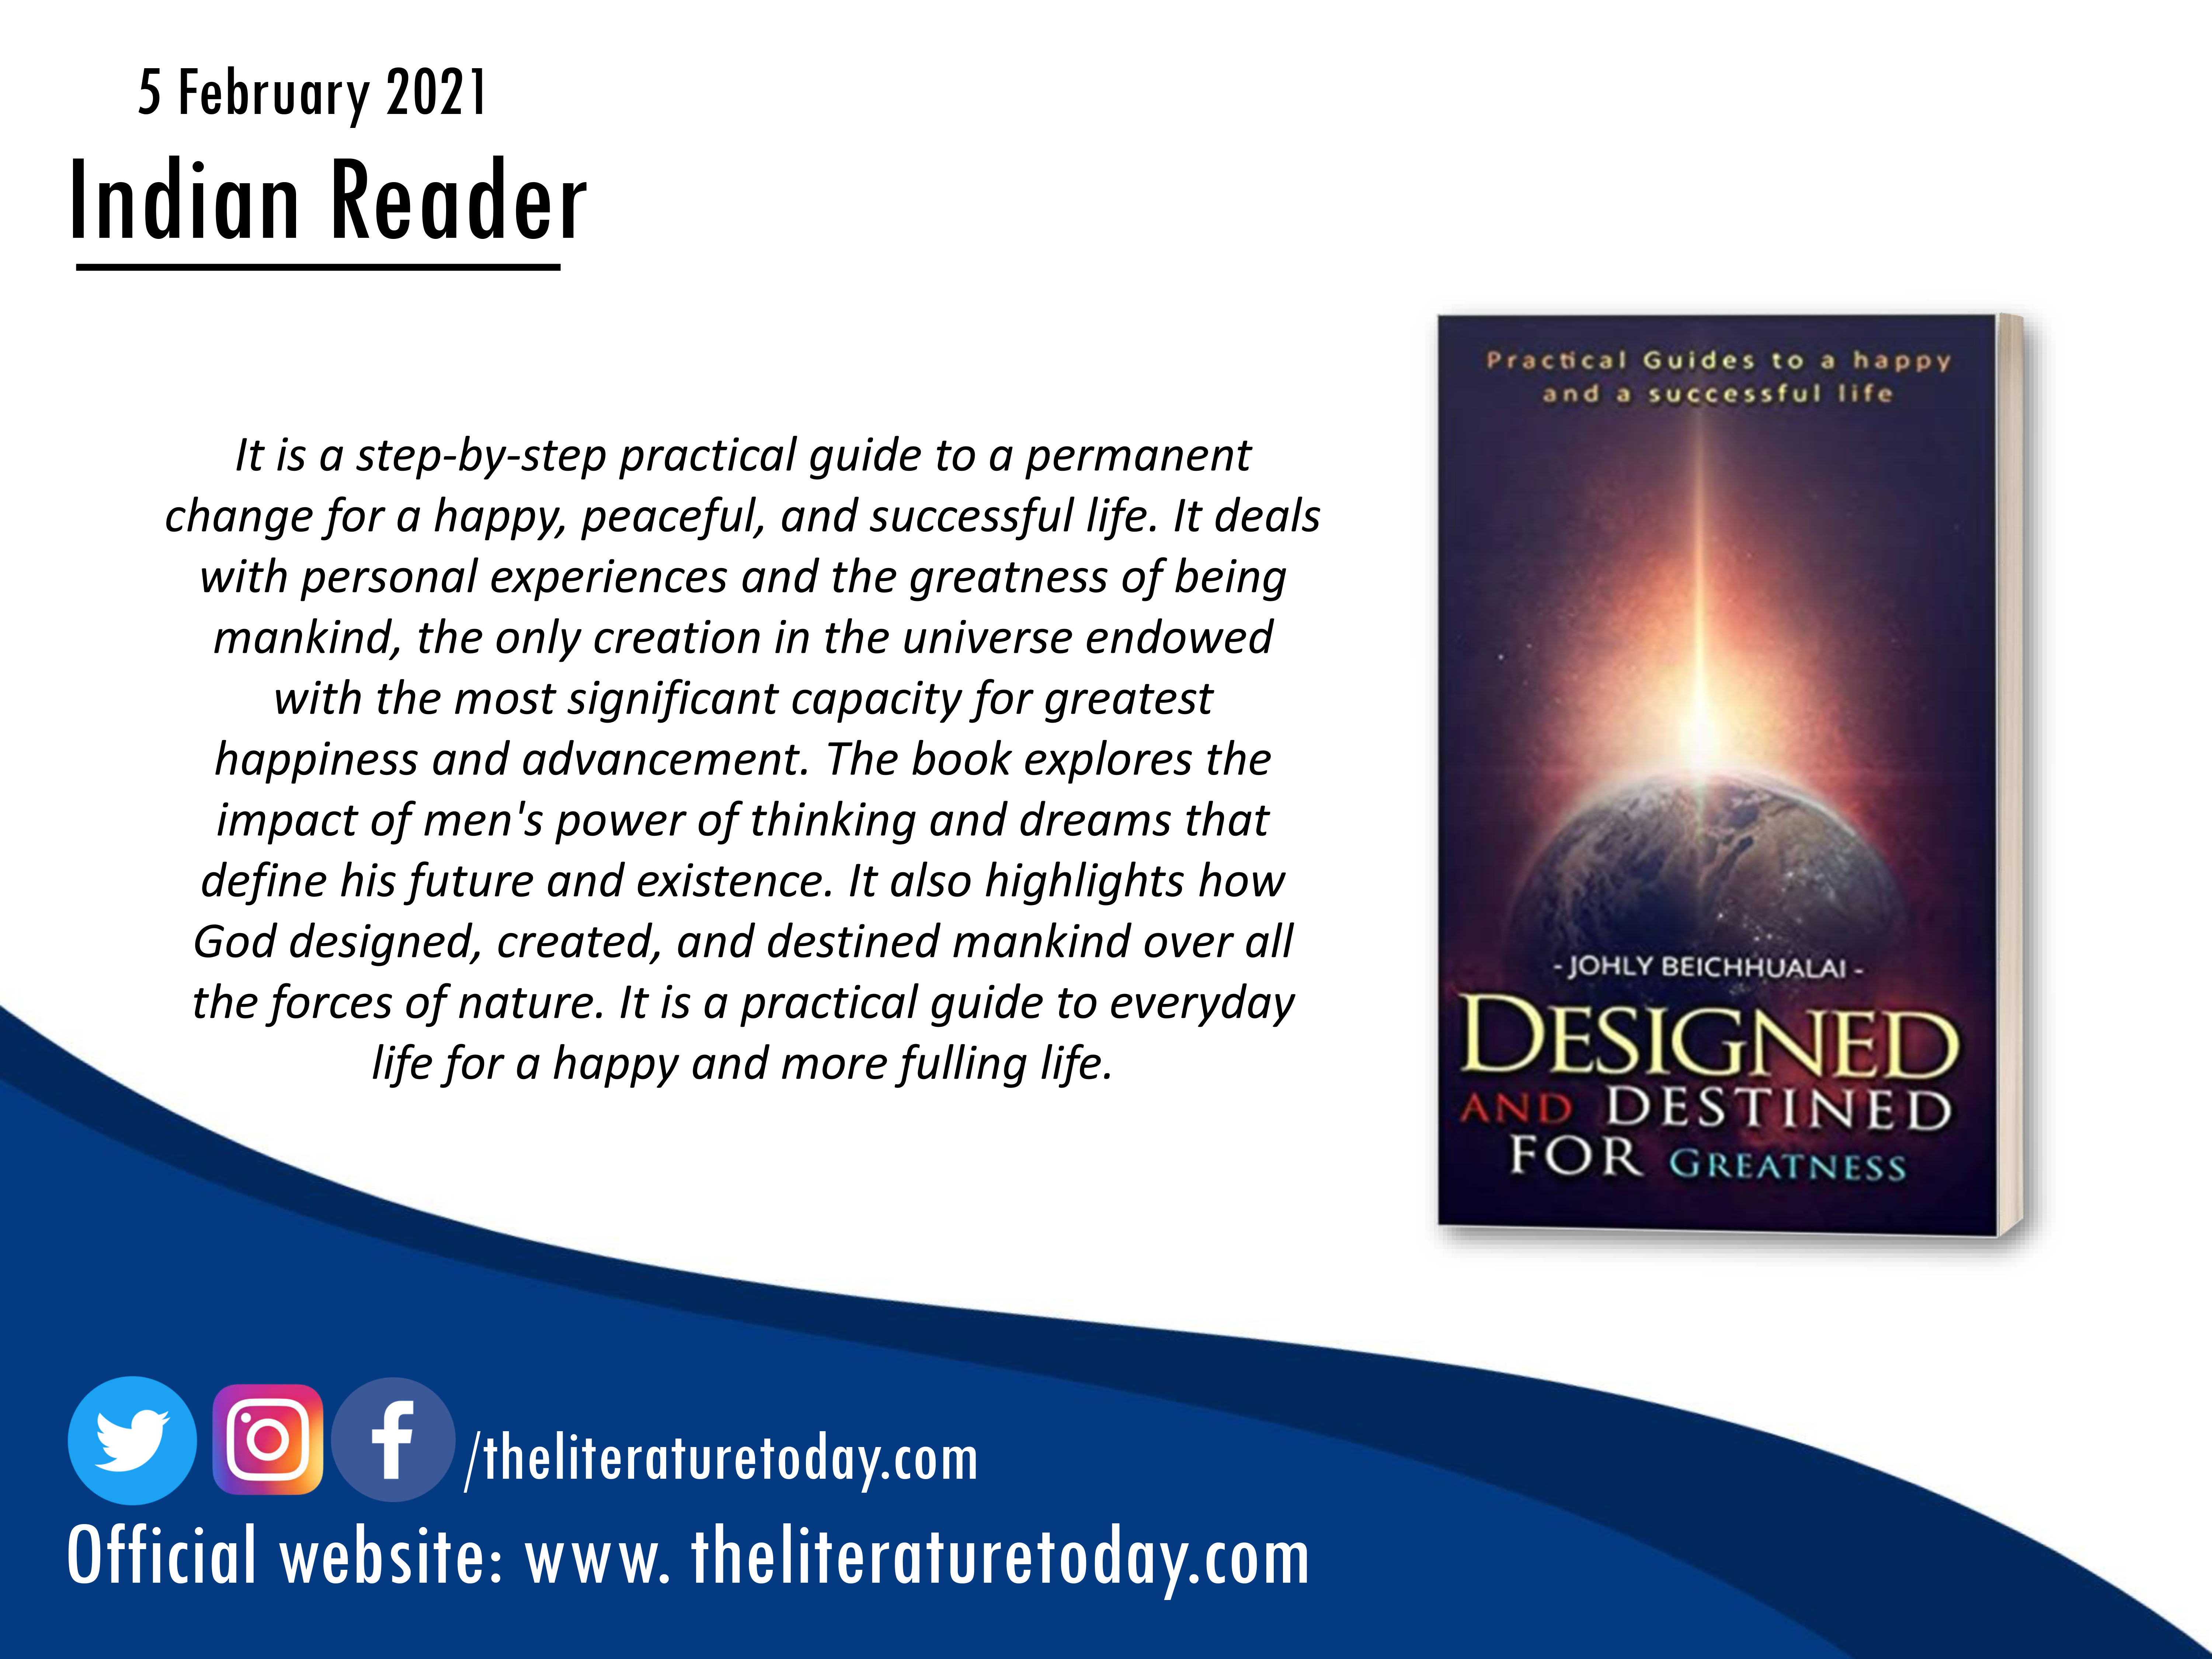 Designed and Destined for Greatness | Johly Beichhualai | Evincepub